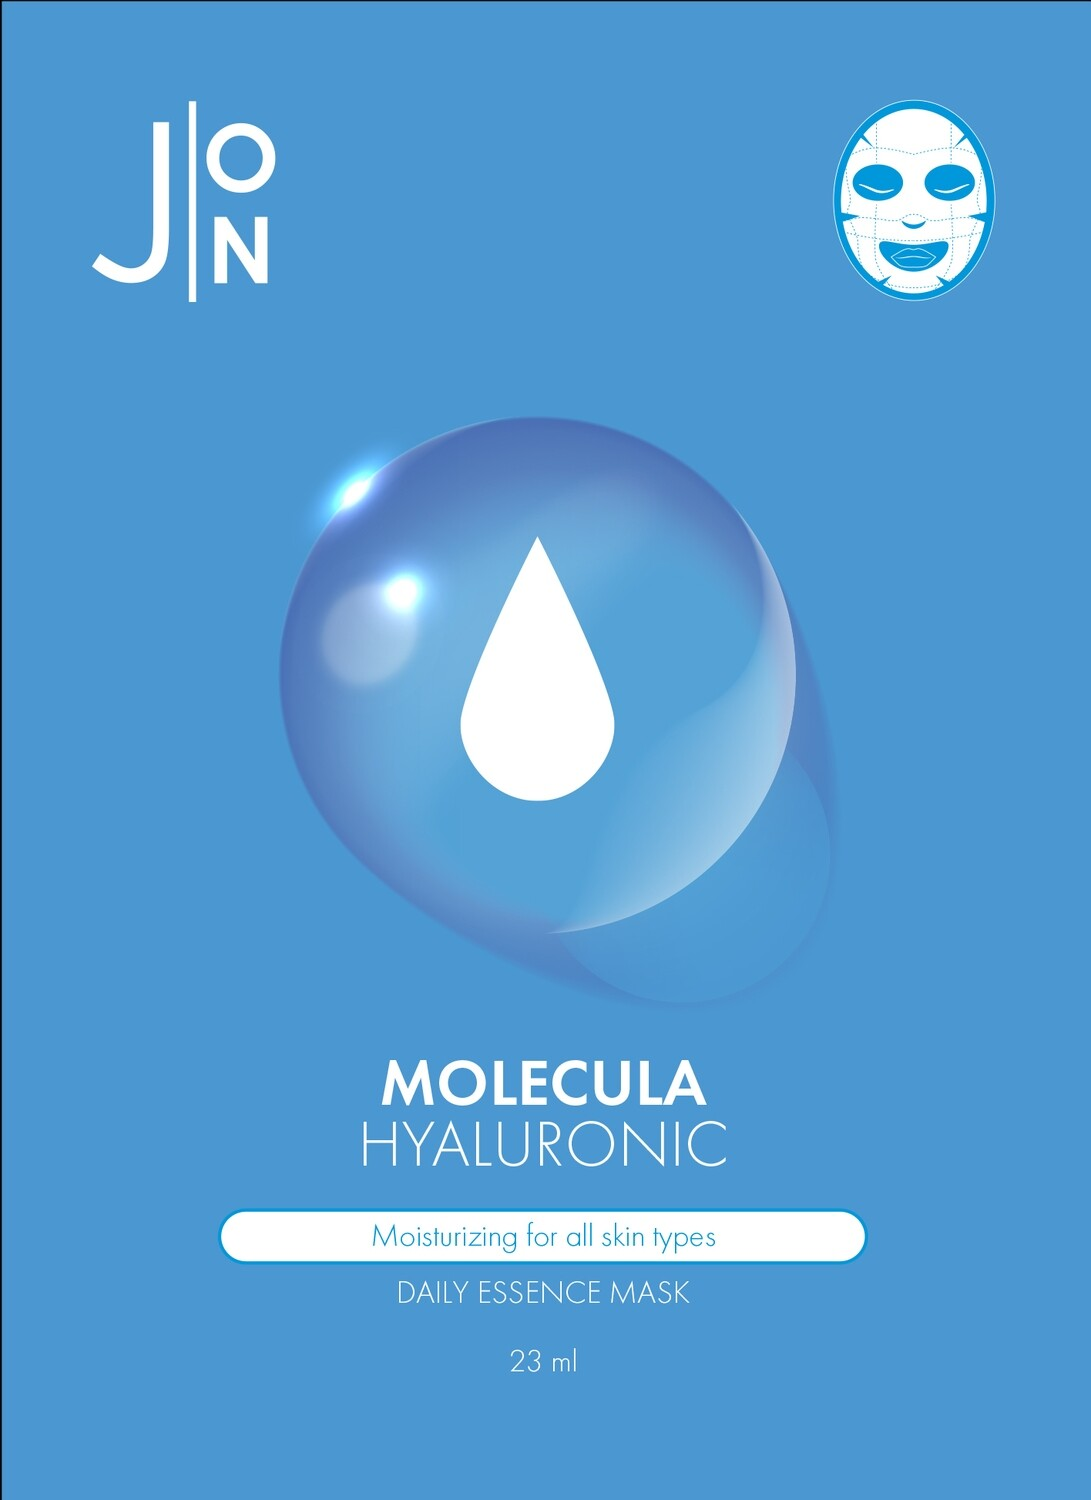 НАБОР Тканевая маска для лица ГИАЛУРОНОВАЯ КИСЛОТА Molecula Hyaluronic Daily Essence Mask, 10шт * 23 мл